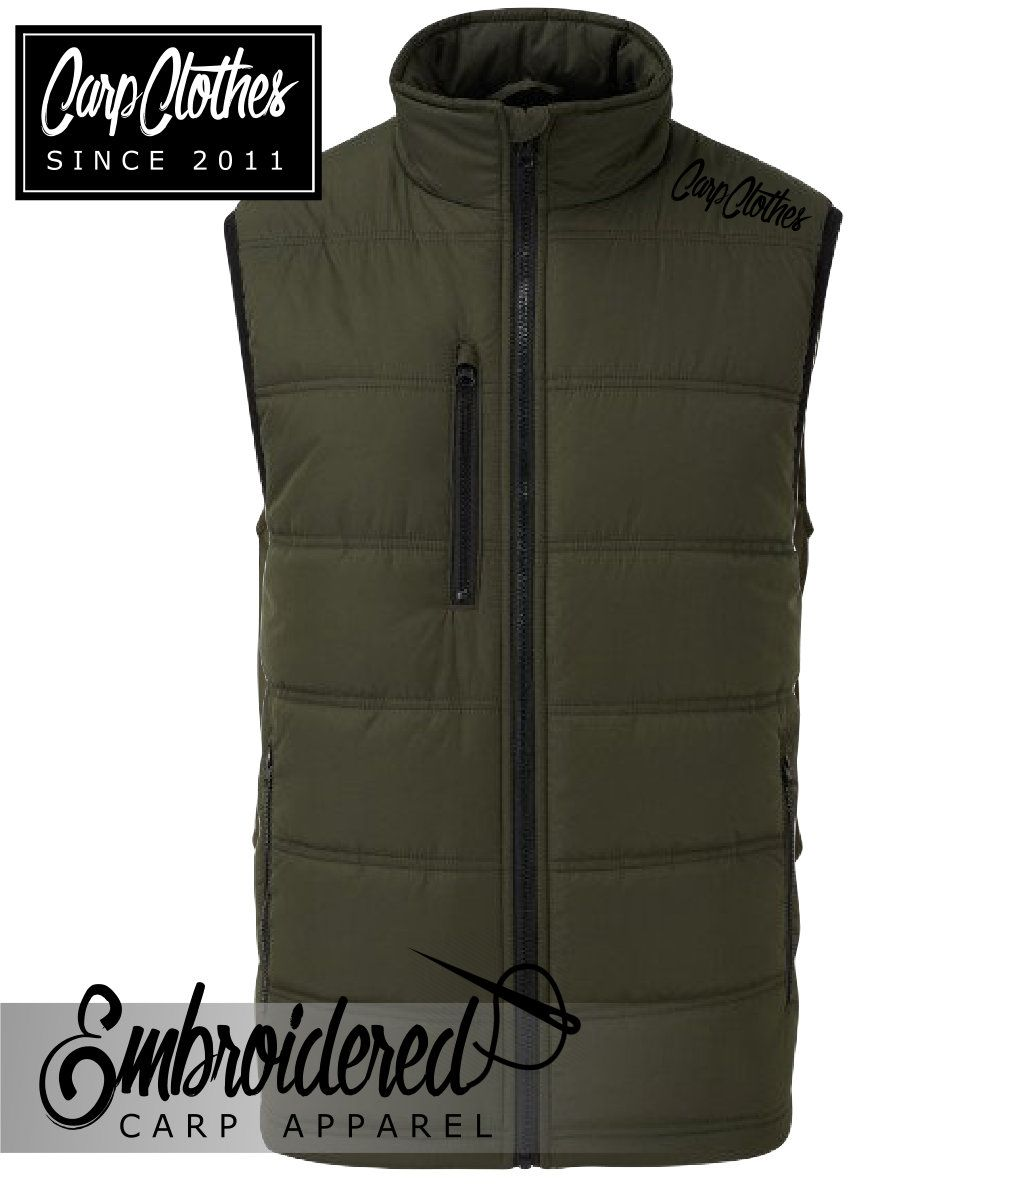 020 OLIVE PADDED BODY WARMER